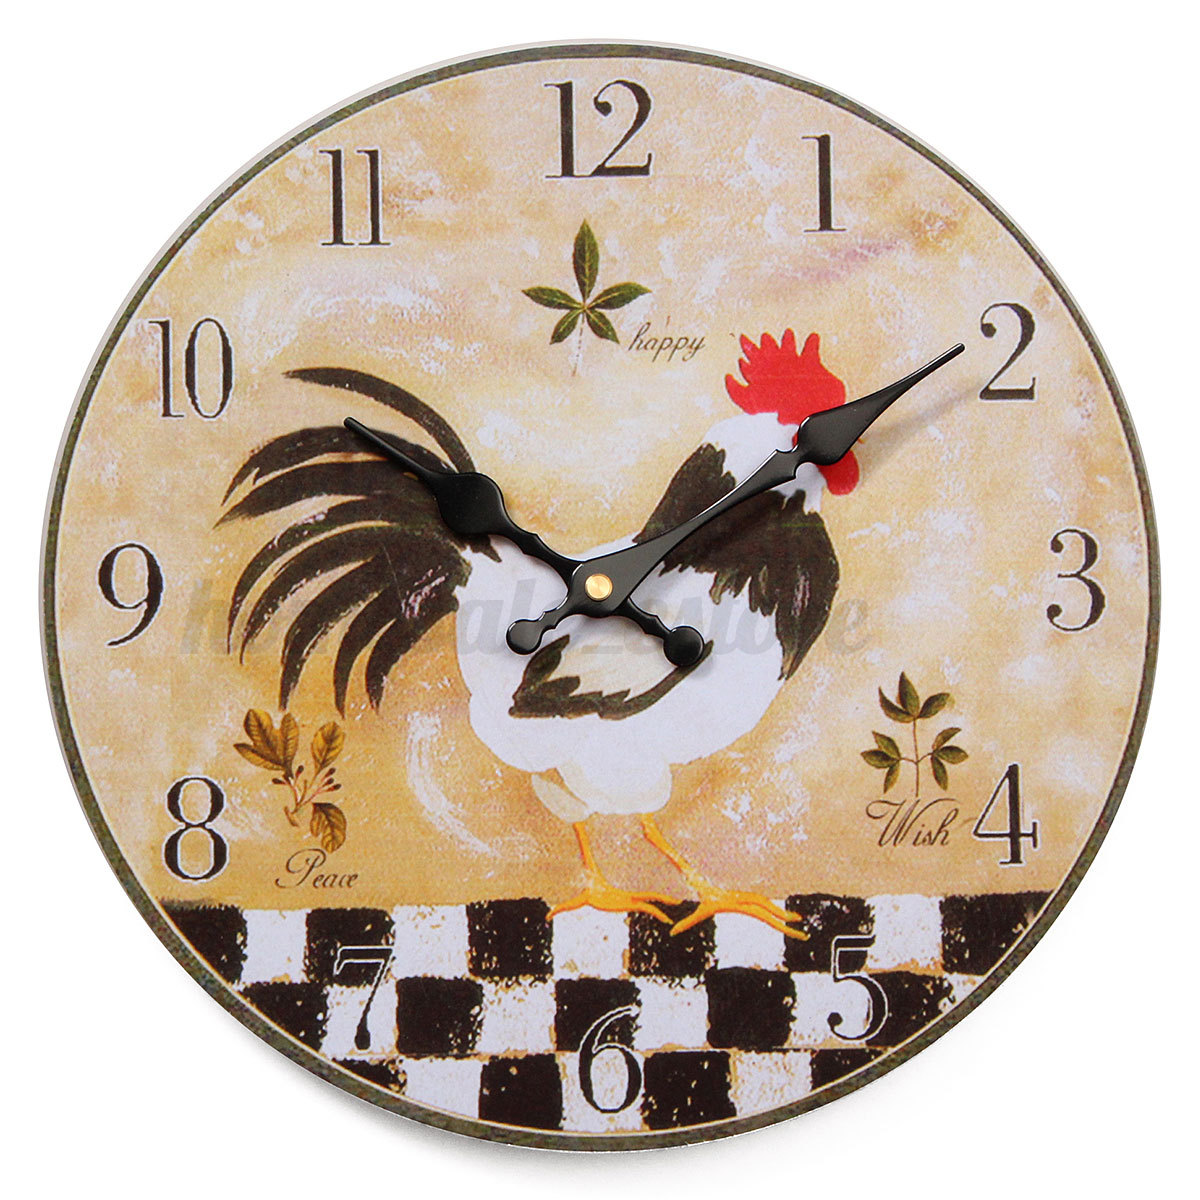 Retro Kitchen Wall Clocks Large Vintage Rustic Wooden Wall Clock Kitchen Antique